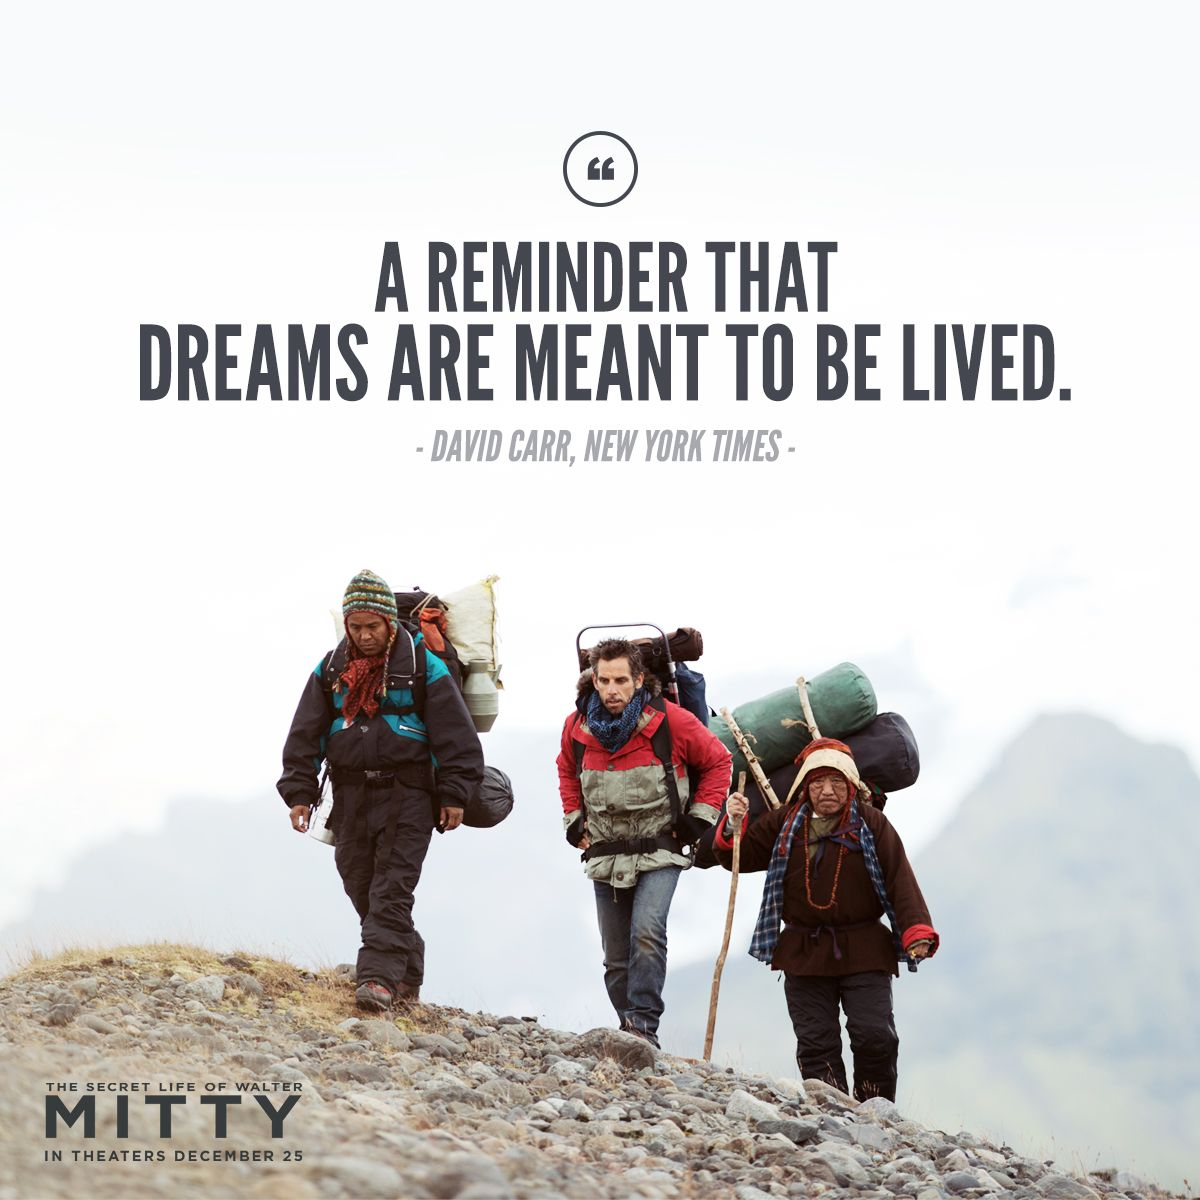 Be Inspired This Holiday Season The Secret Life Of Walter Mitty